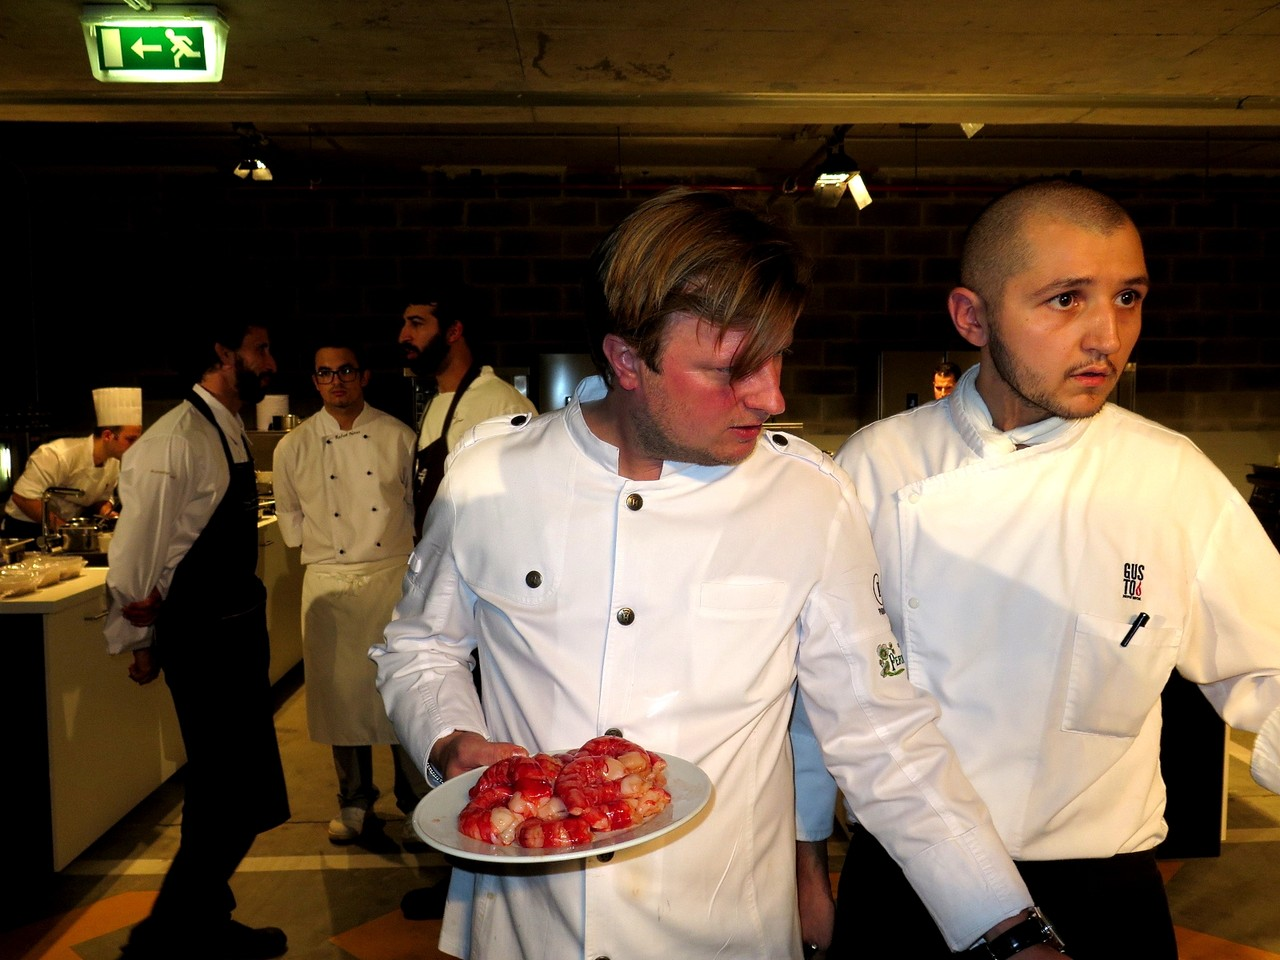 Kevin Fehling e Daniele Pirillo, chef residente do GUSTO by Heinz Beck